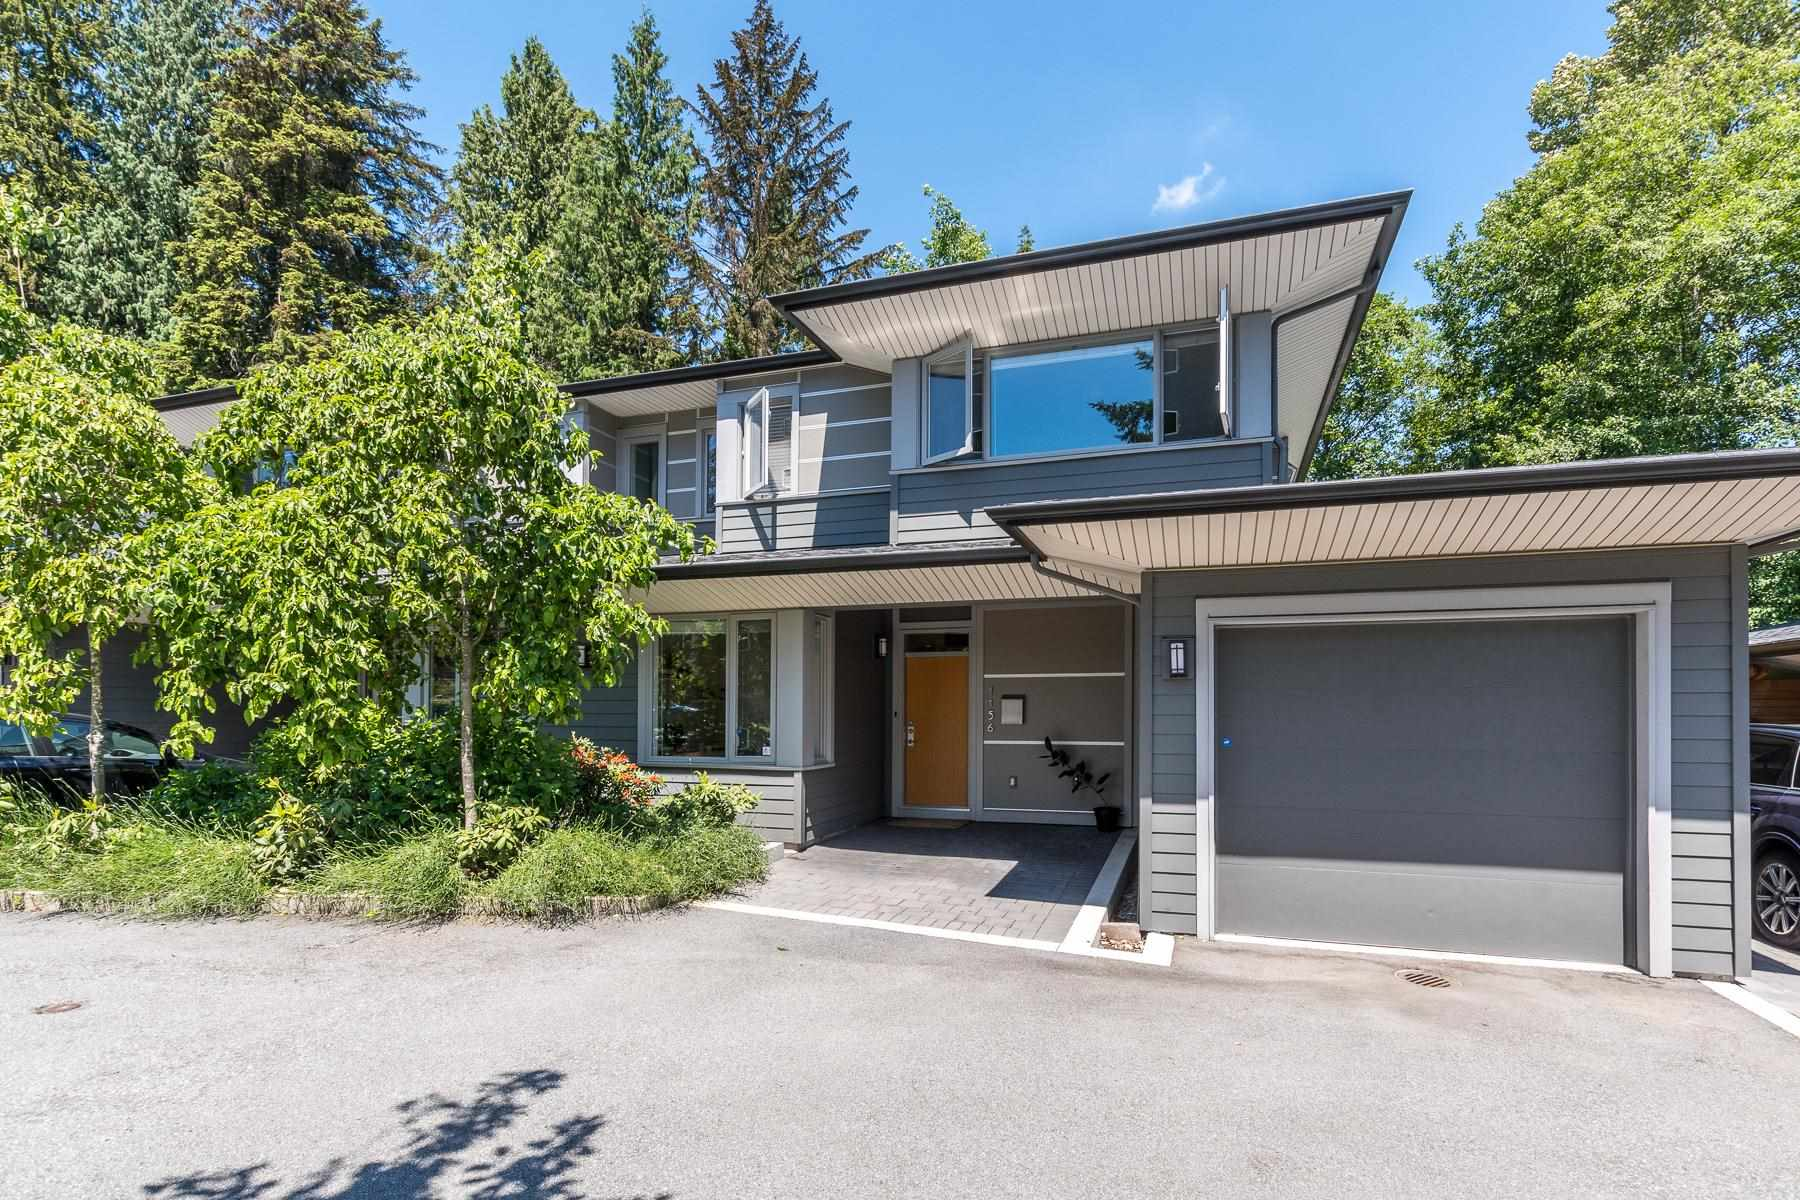 1156 WENDEL PLACE - Lynn Valley 1/2 Duplex for sale, 3 Bedrooms (R2595892) - #1